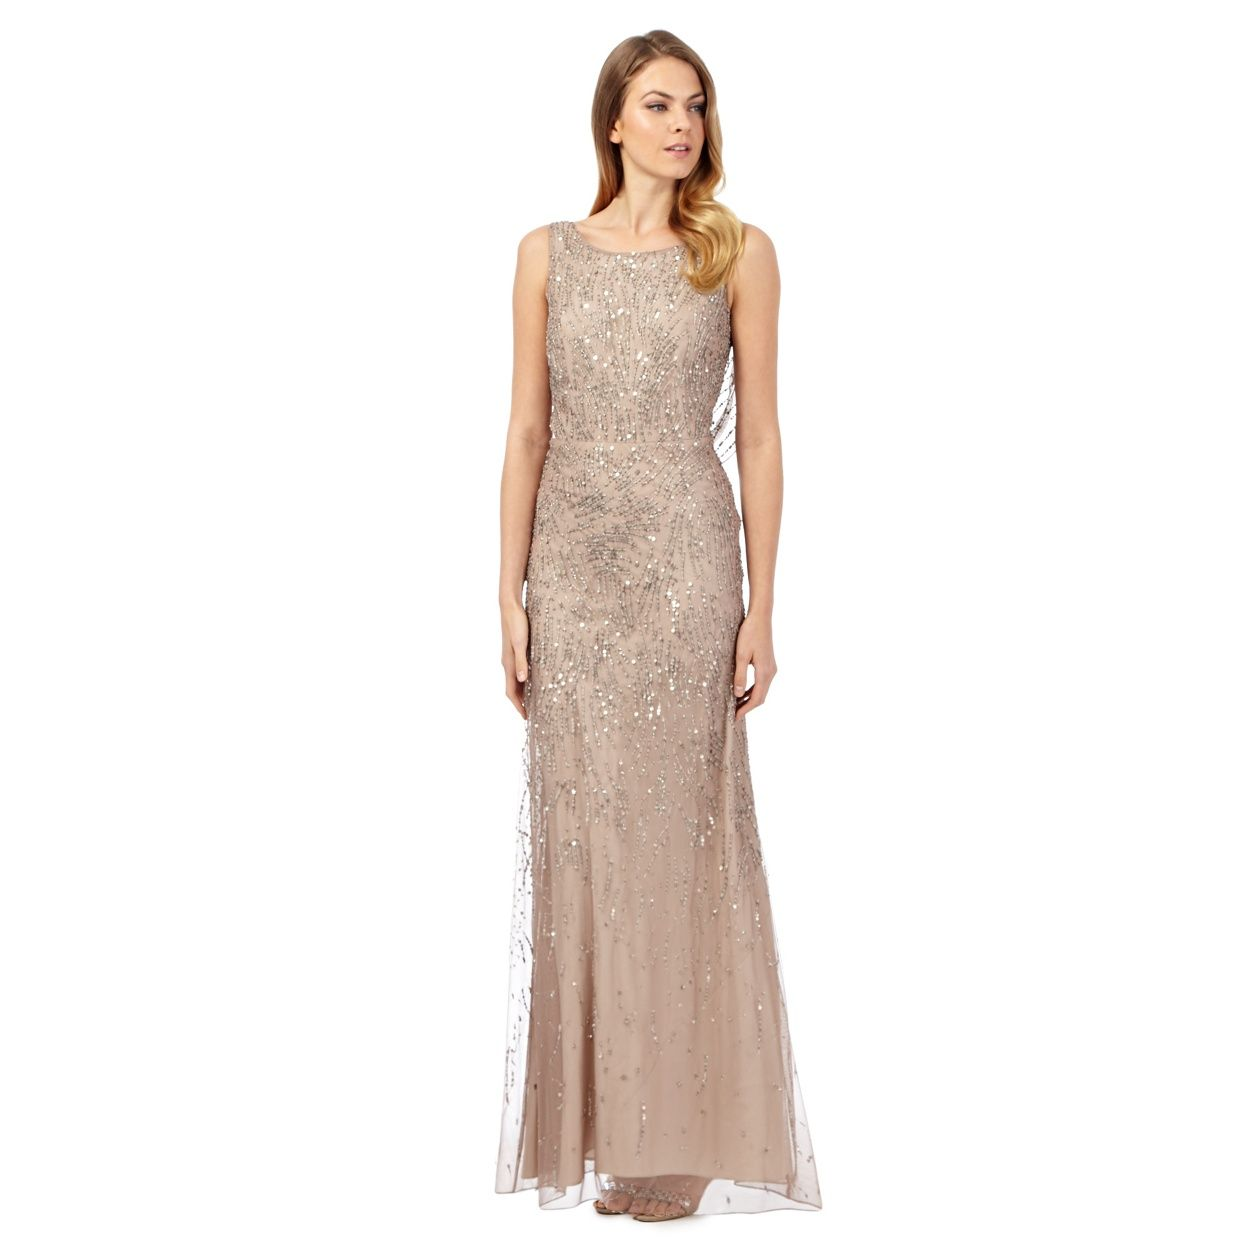 Debut bronze eclipse hand embellished evening dress at debut bronze eclipse hand embellished evening dress at debenhams ombrellifo Image collections